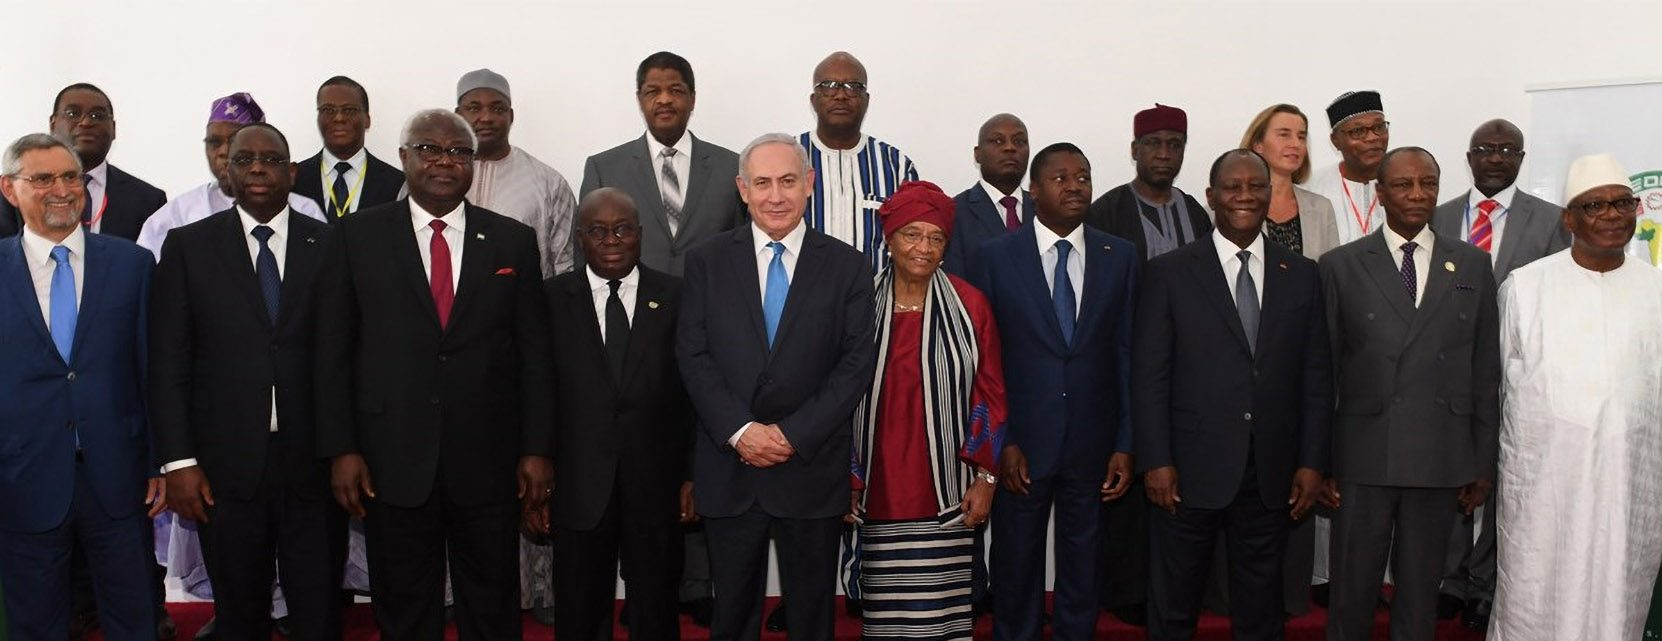 Wide-angle photograph showing Benjamin Natanyahu standing among West African leaders, all wearing formal attire, with a white wall and banners in the background